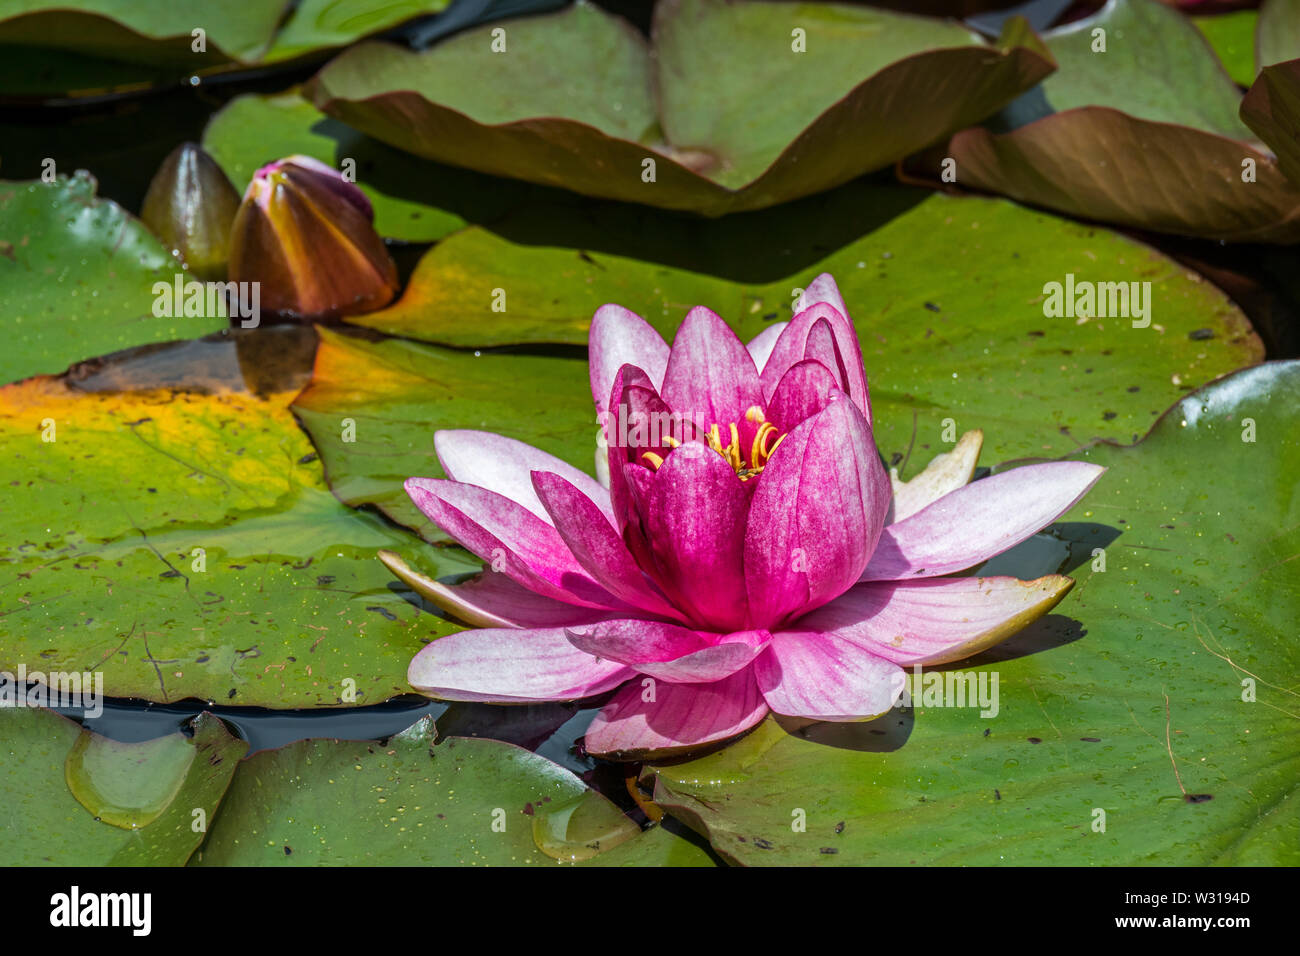 Pink cultivar of Nymphaea / water lily in flower in pond Stock Photo